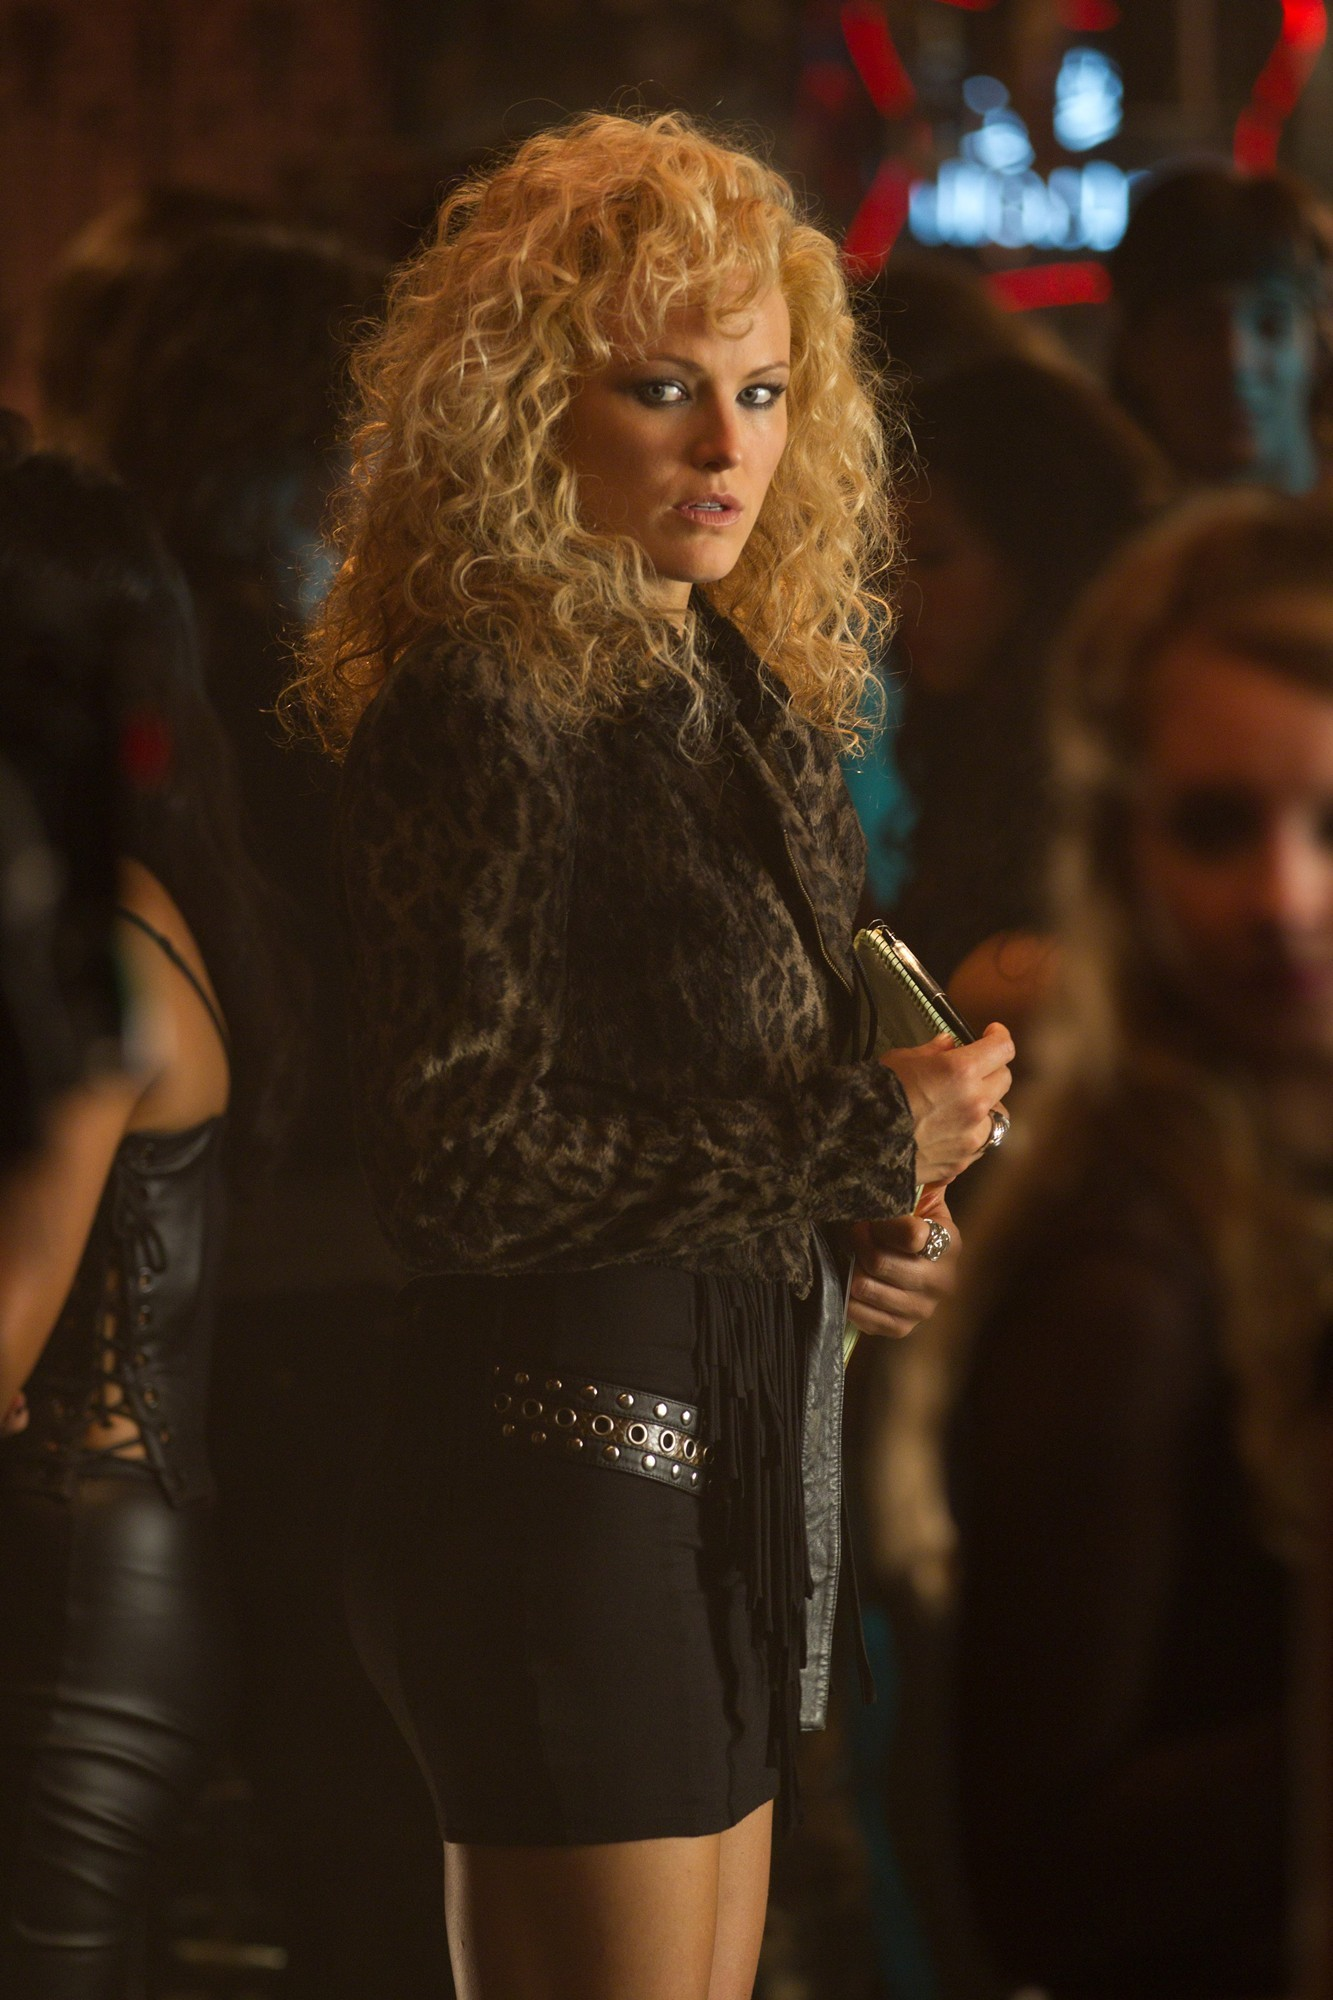 constance sack | rock of ages wiki | fandom poweredwikia